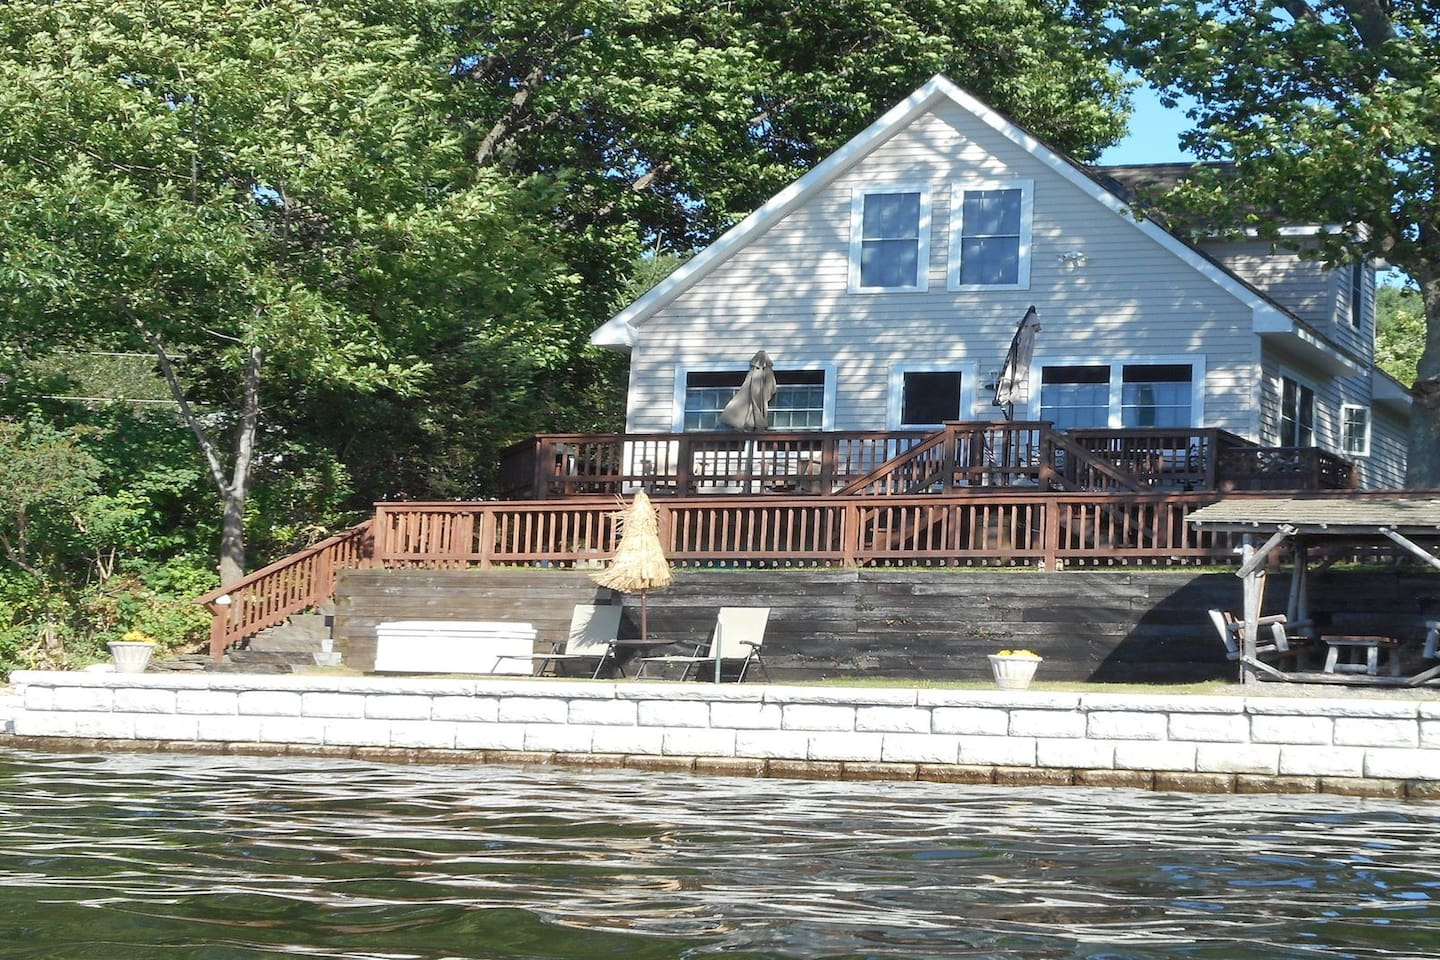 The Little Cottage House on Kinderhook Lake